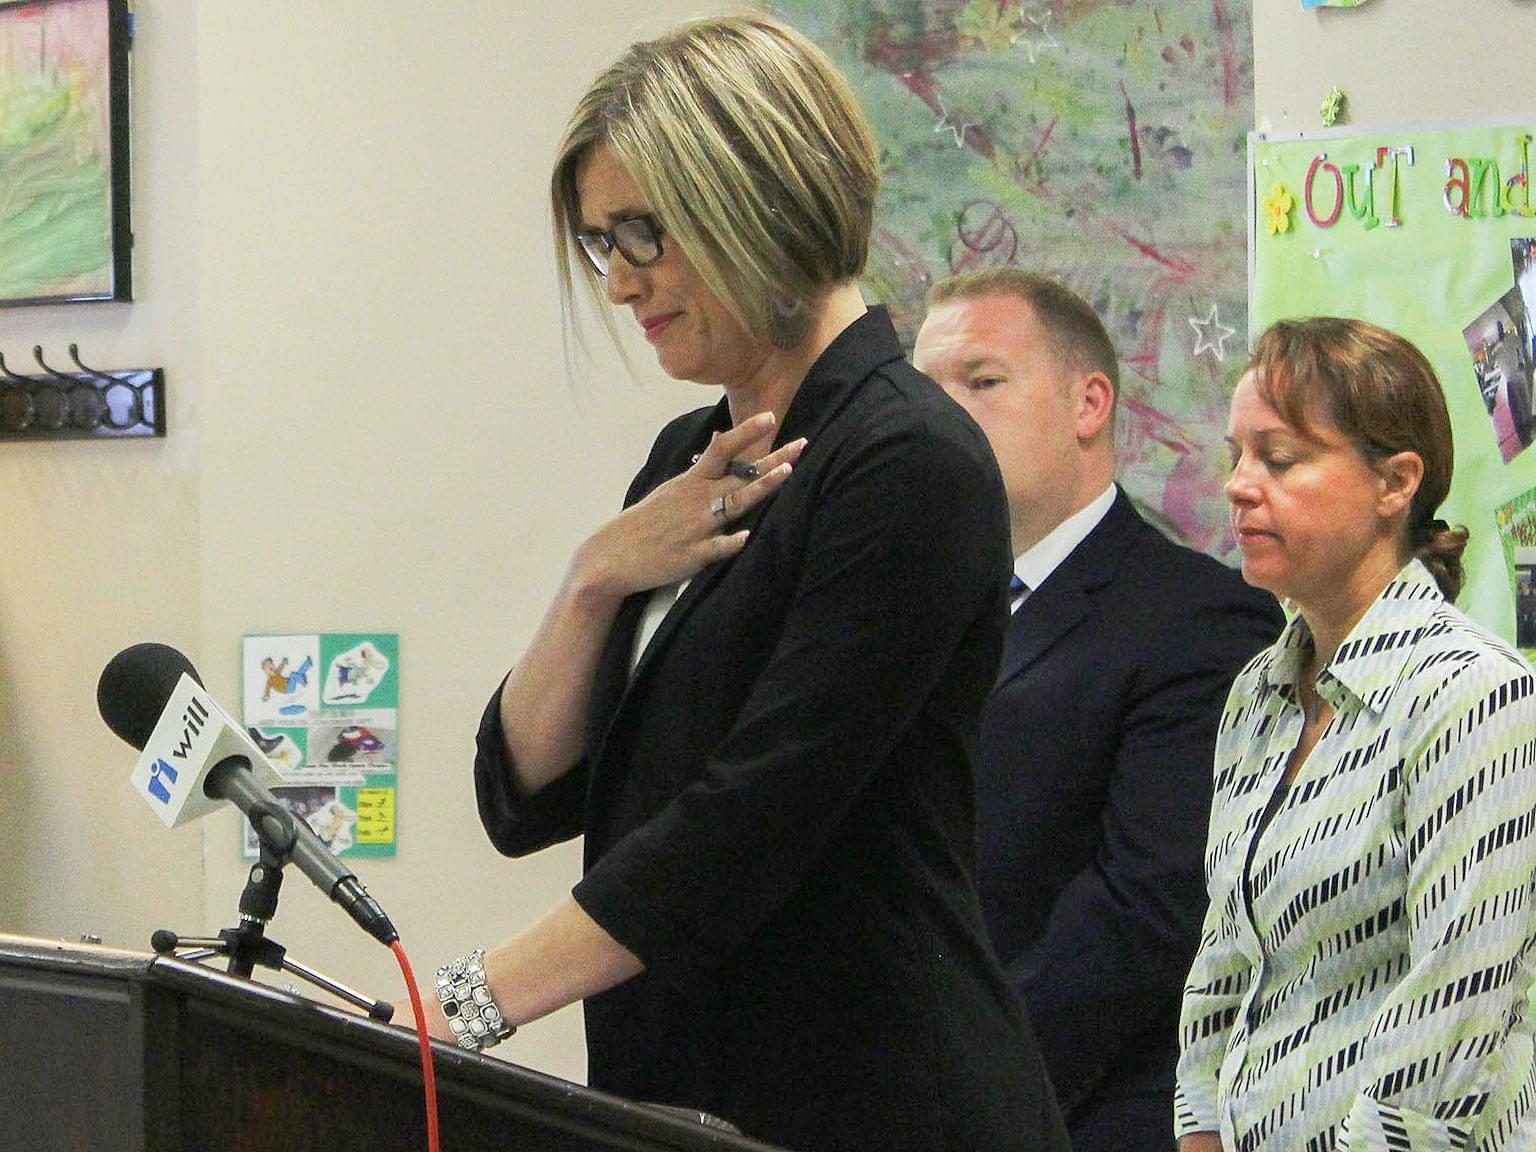 Kristina Rath, whose 11-year old son is autistic, gets emotional when addressing a group at Champaign's Developmental Services Center Monday.